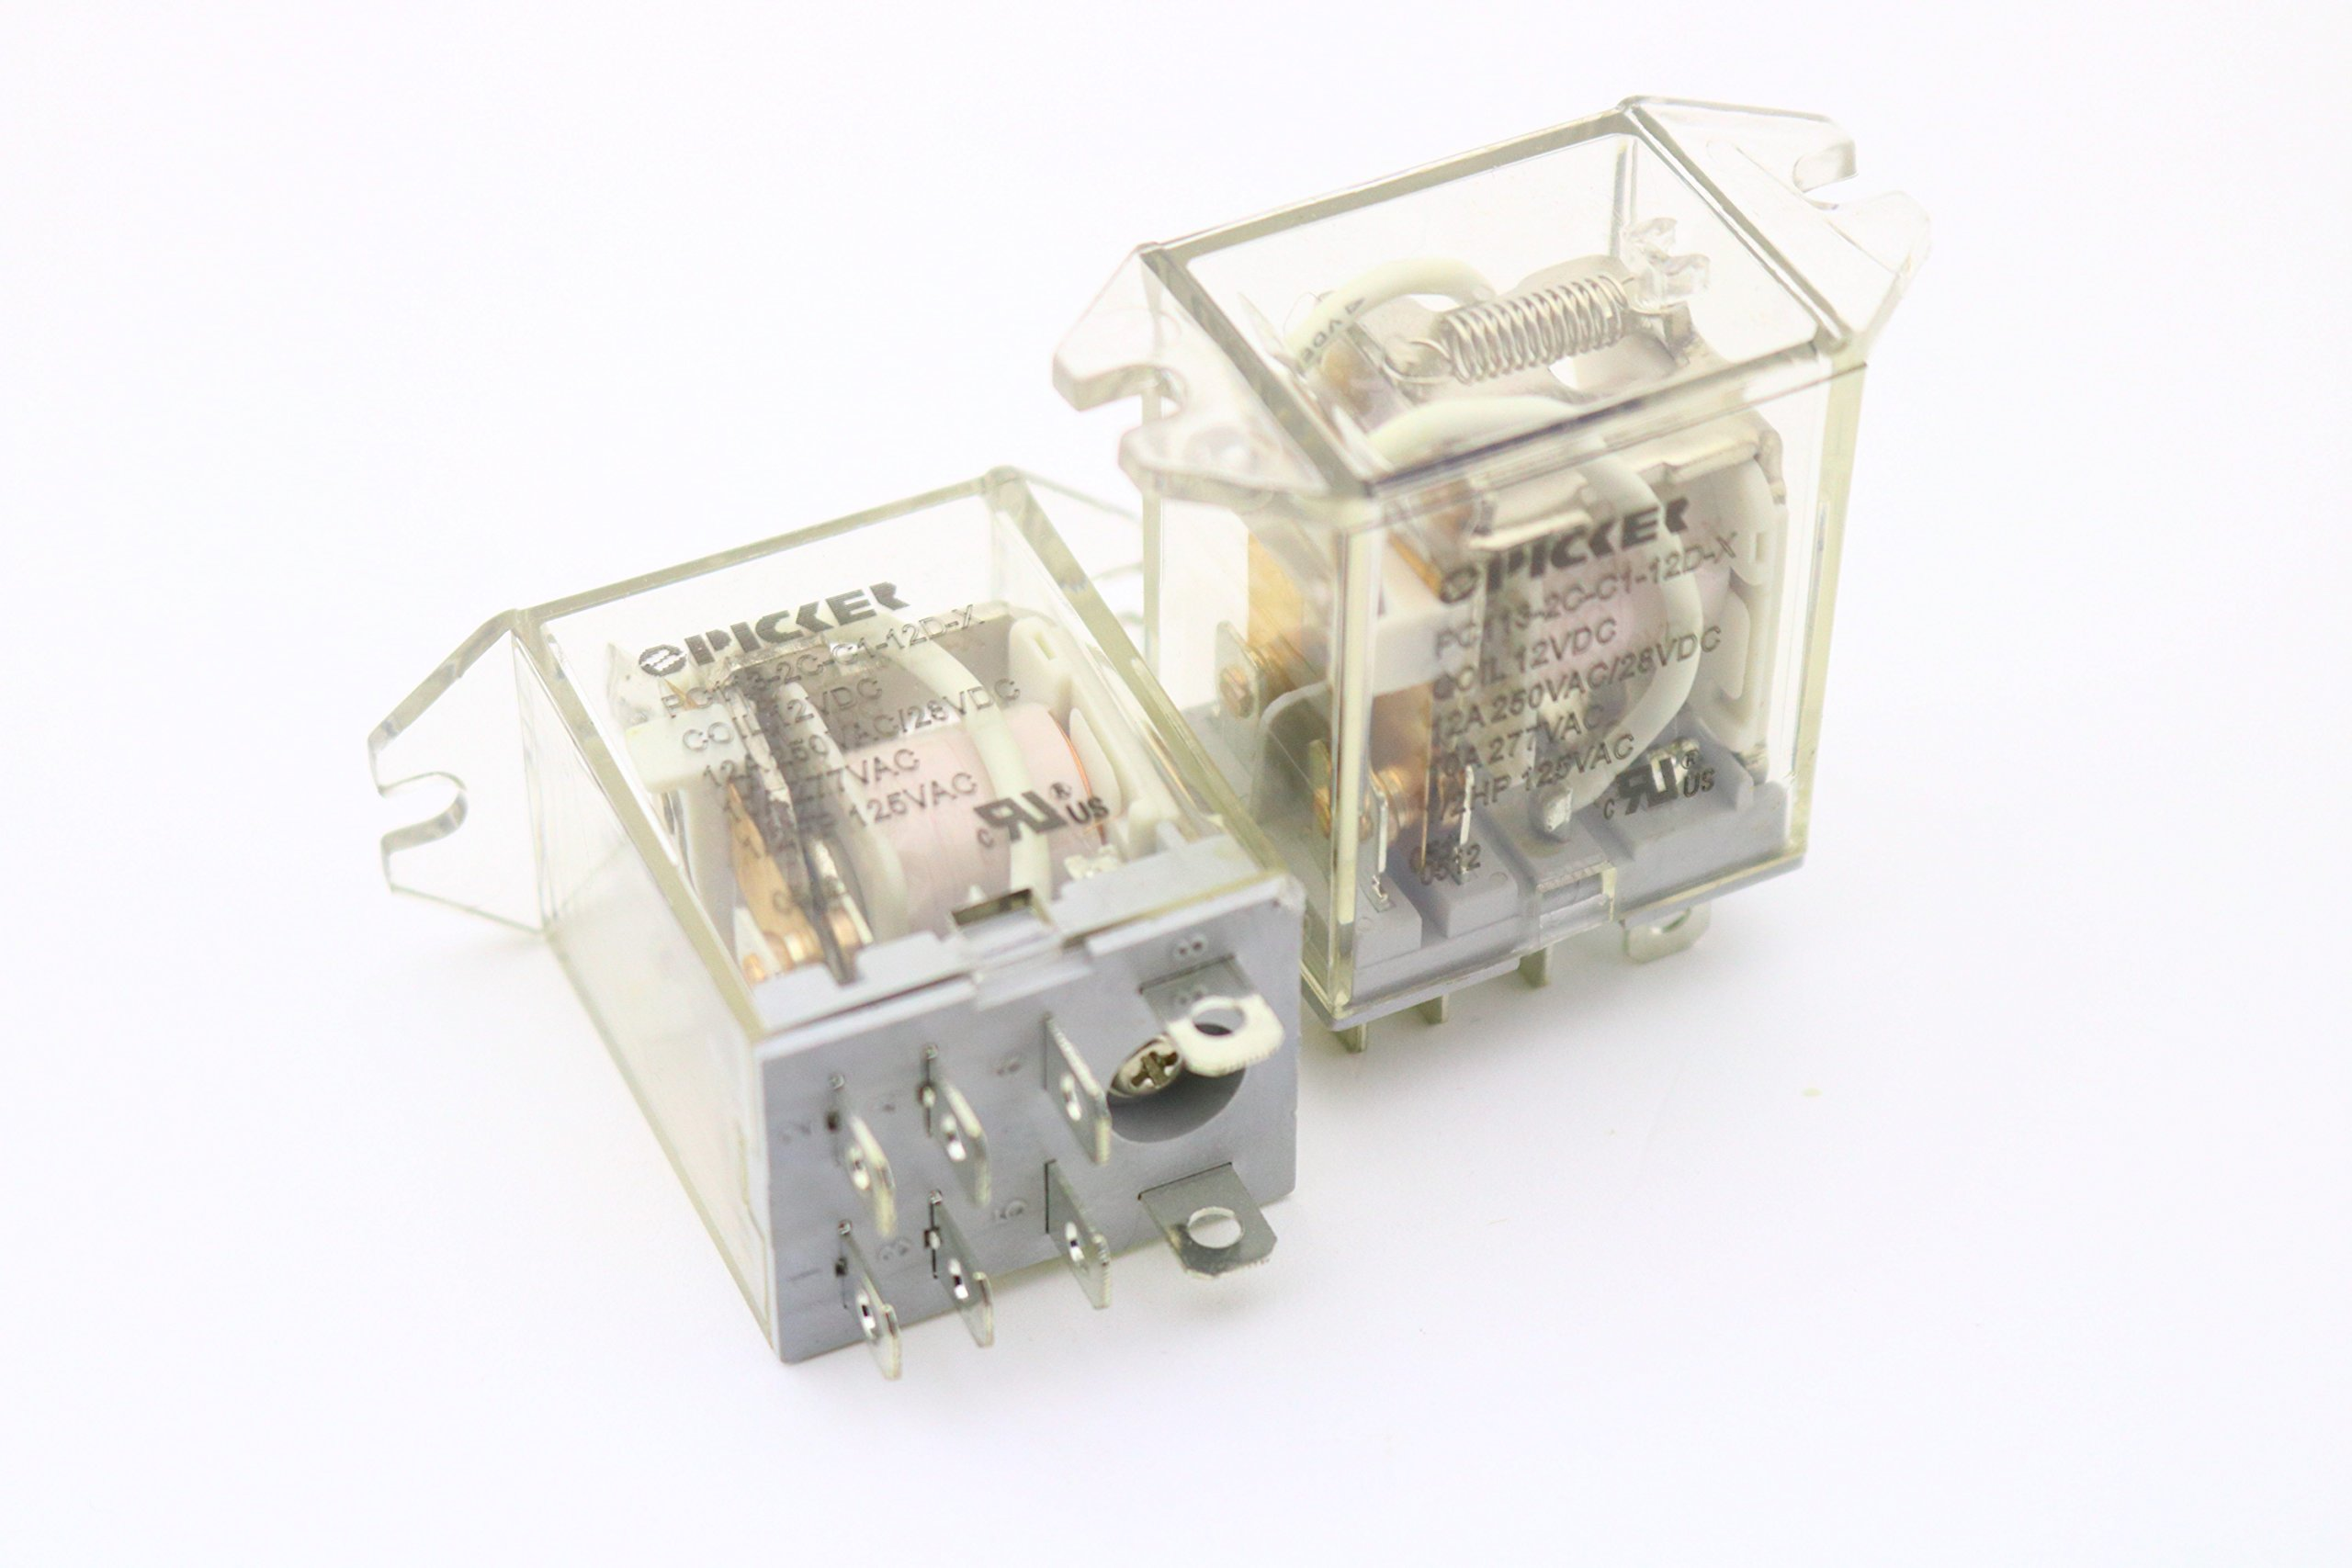 (x2) PC113-2C-C1-12D-X-2 | DPDT 12 VDC Coil 12 Amp 250 VAC UL Rated, Miniature General Purpose Ice Cube Relay w/Clear Plastic Top Flange Mounting Case | Cross: Song Chuan SCL-DPDT-C1-12VDC by PICKER (Image #1)